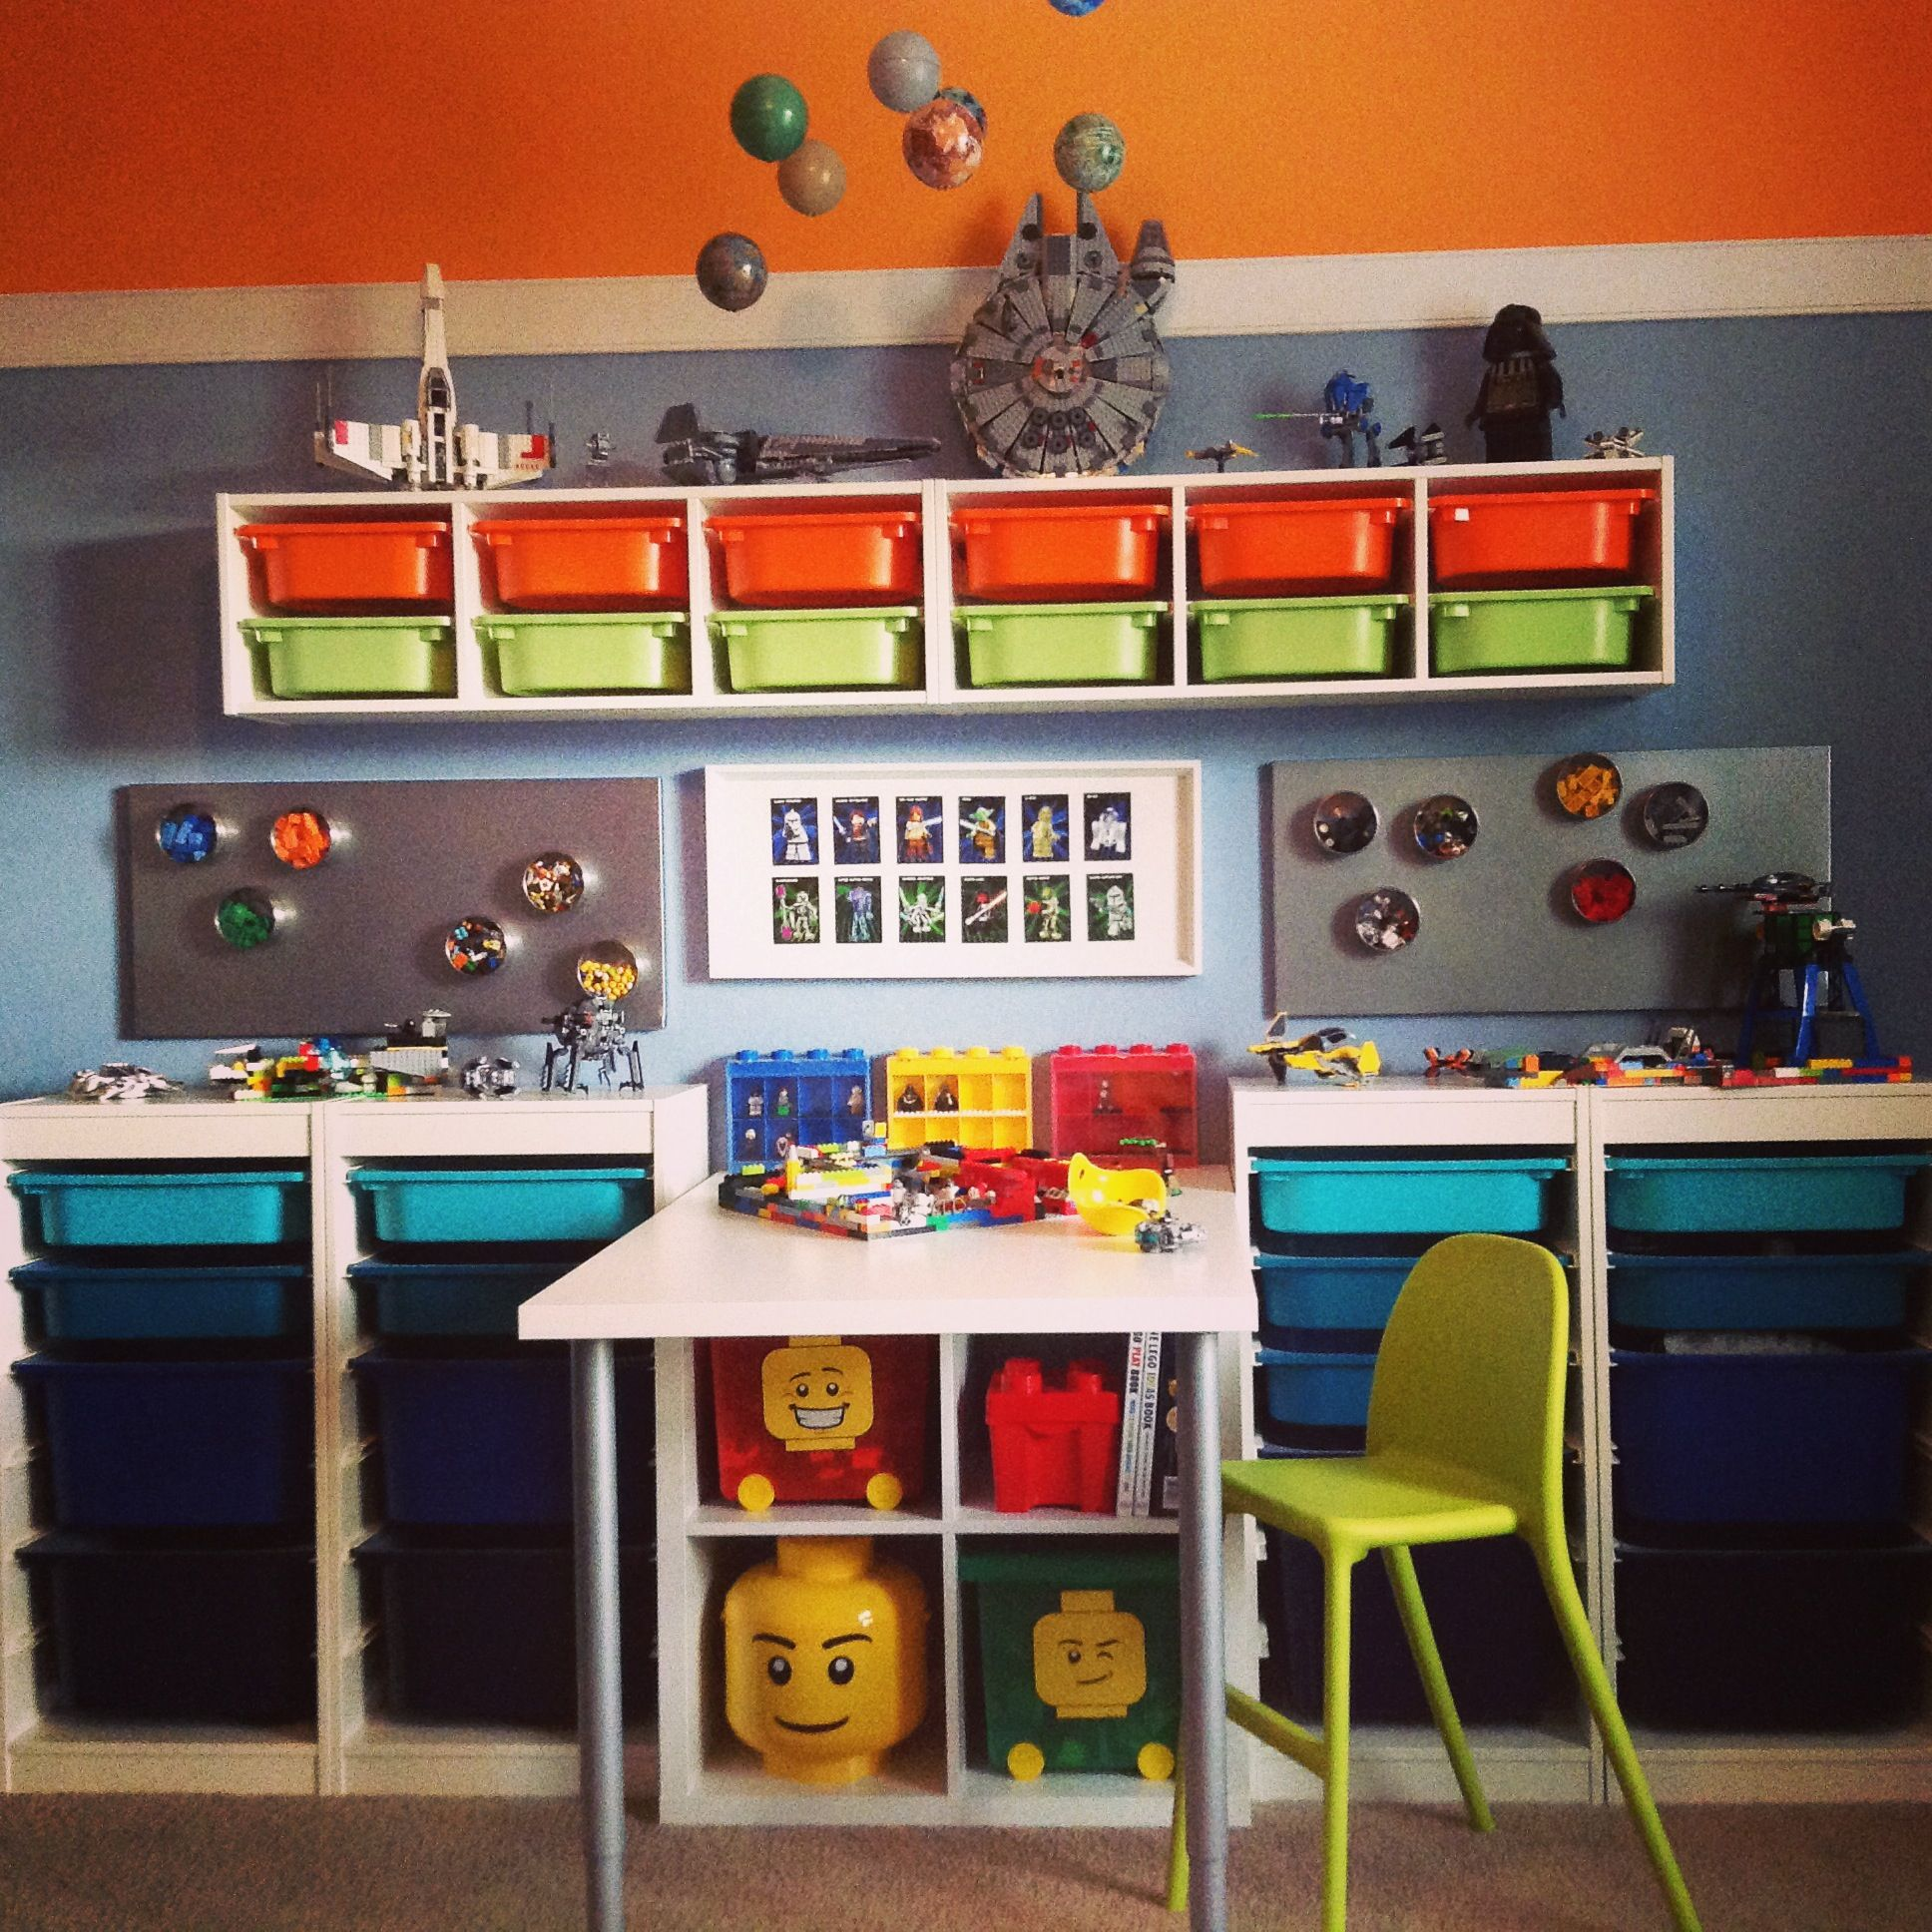 Star Wars Lego Work Bench Storage System Perfect For